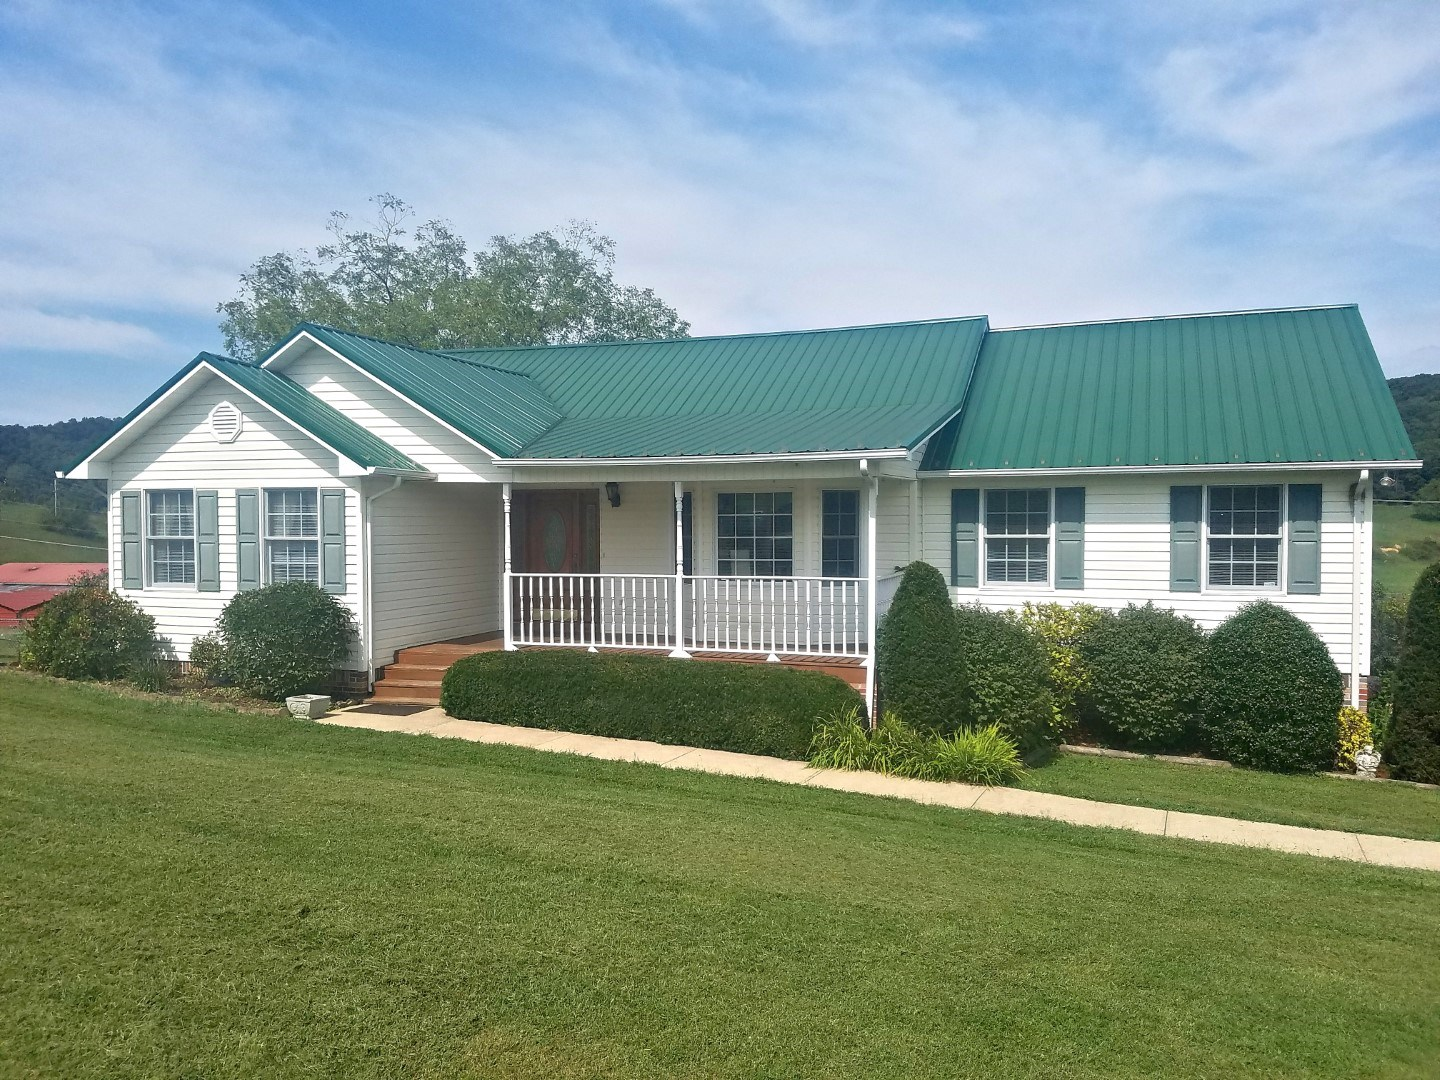 Beautiful, Spacious Home a Great Neighborhood - Abingdon, VA